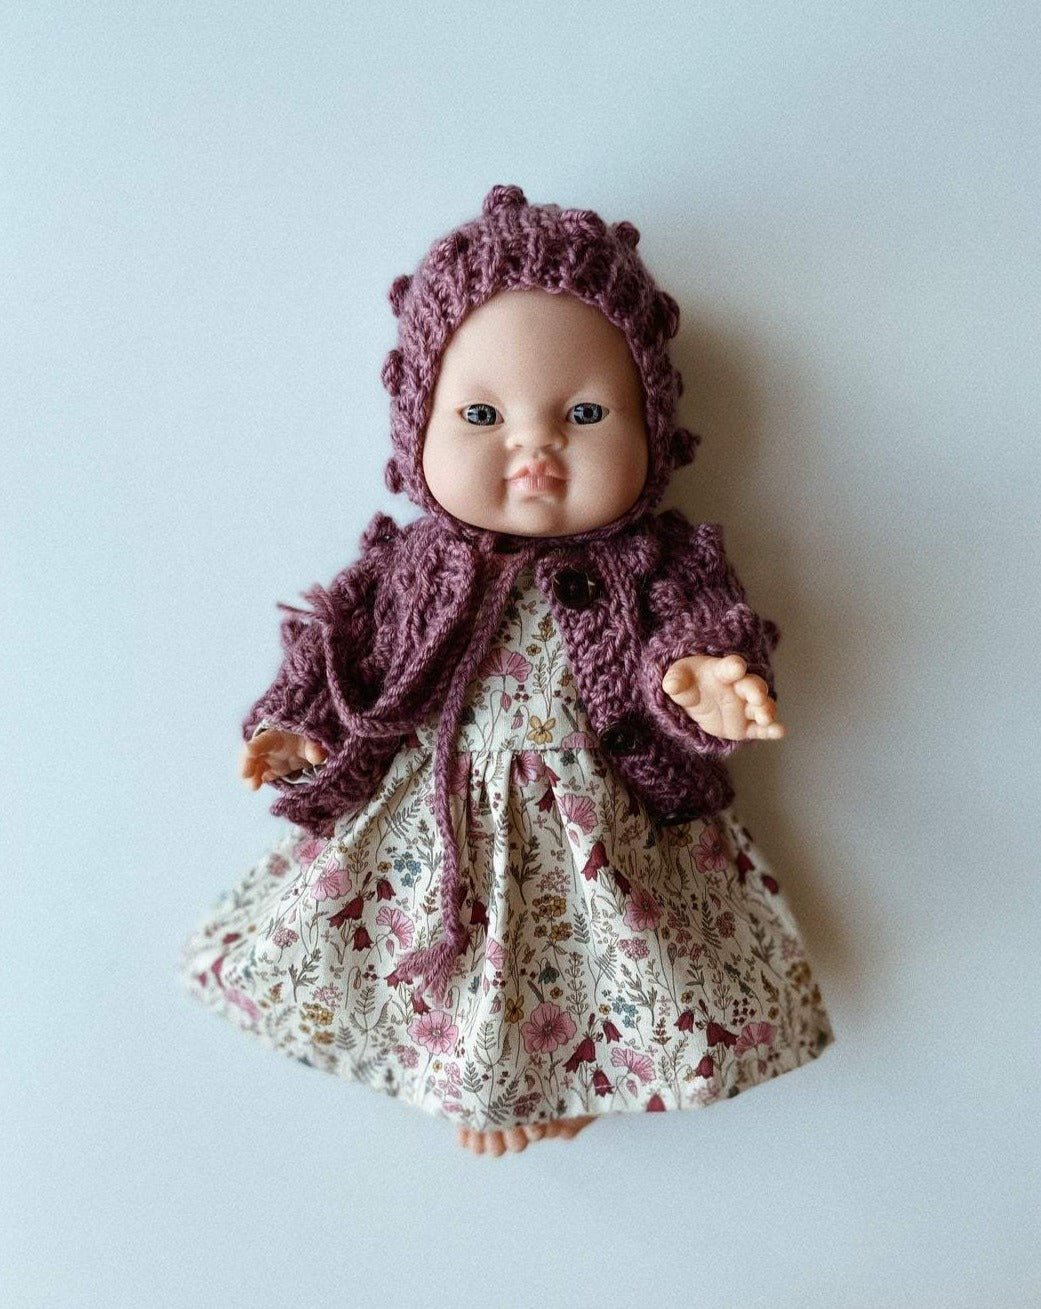 minikane asian babygirl dolls